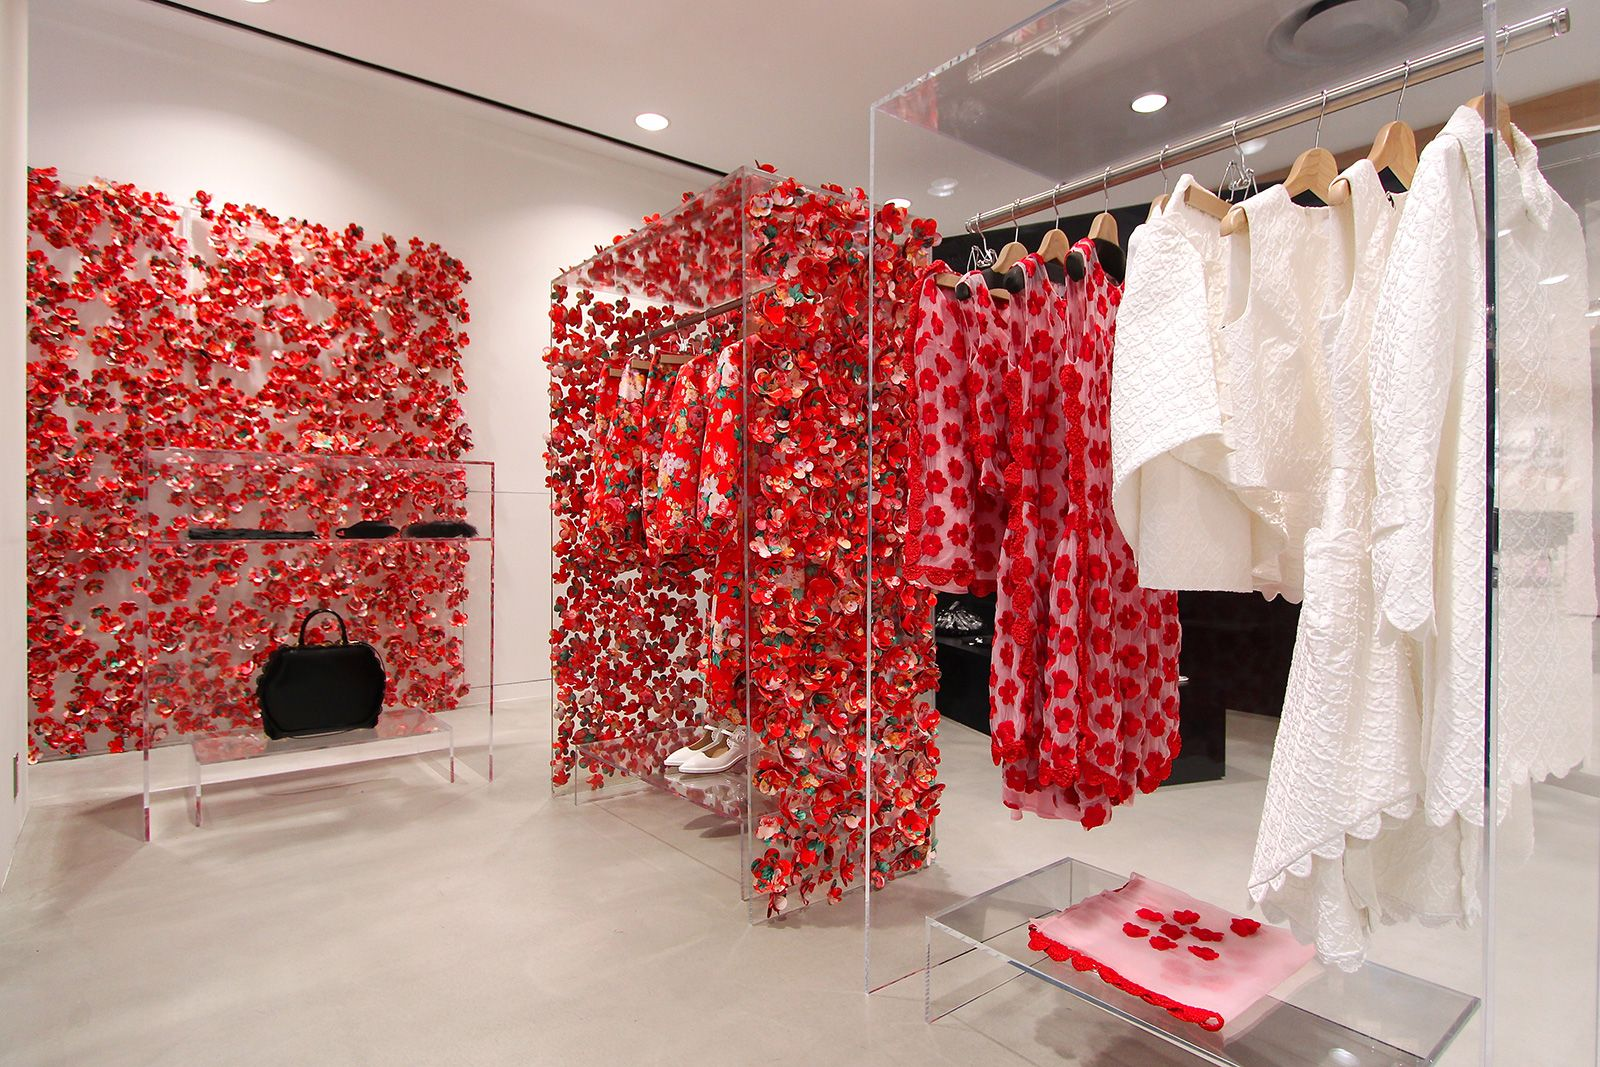 Dover street market store new york city retail design blog - Simone Rocha Flower Series Has Arrived On Find This Pin And More On Dover Street Market